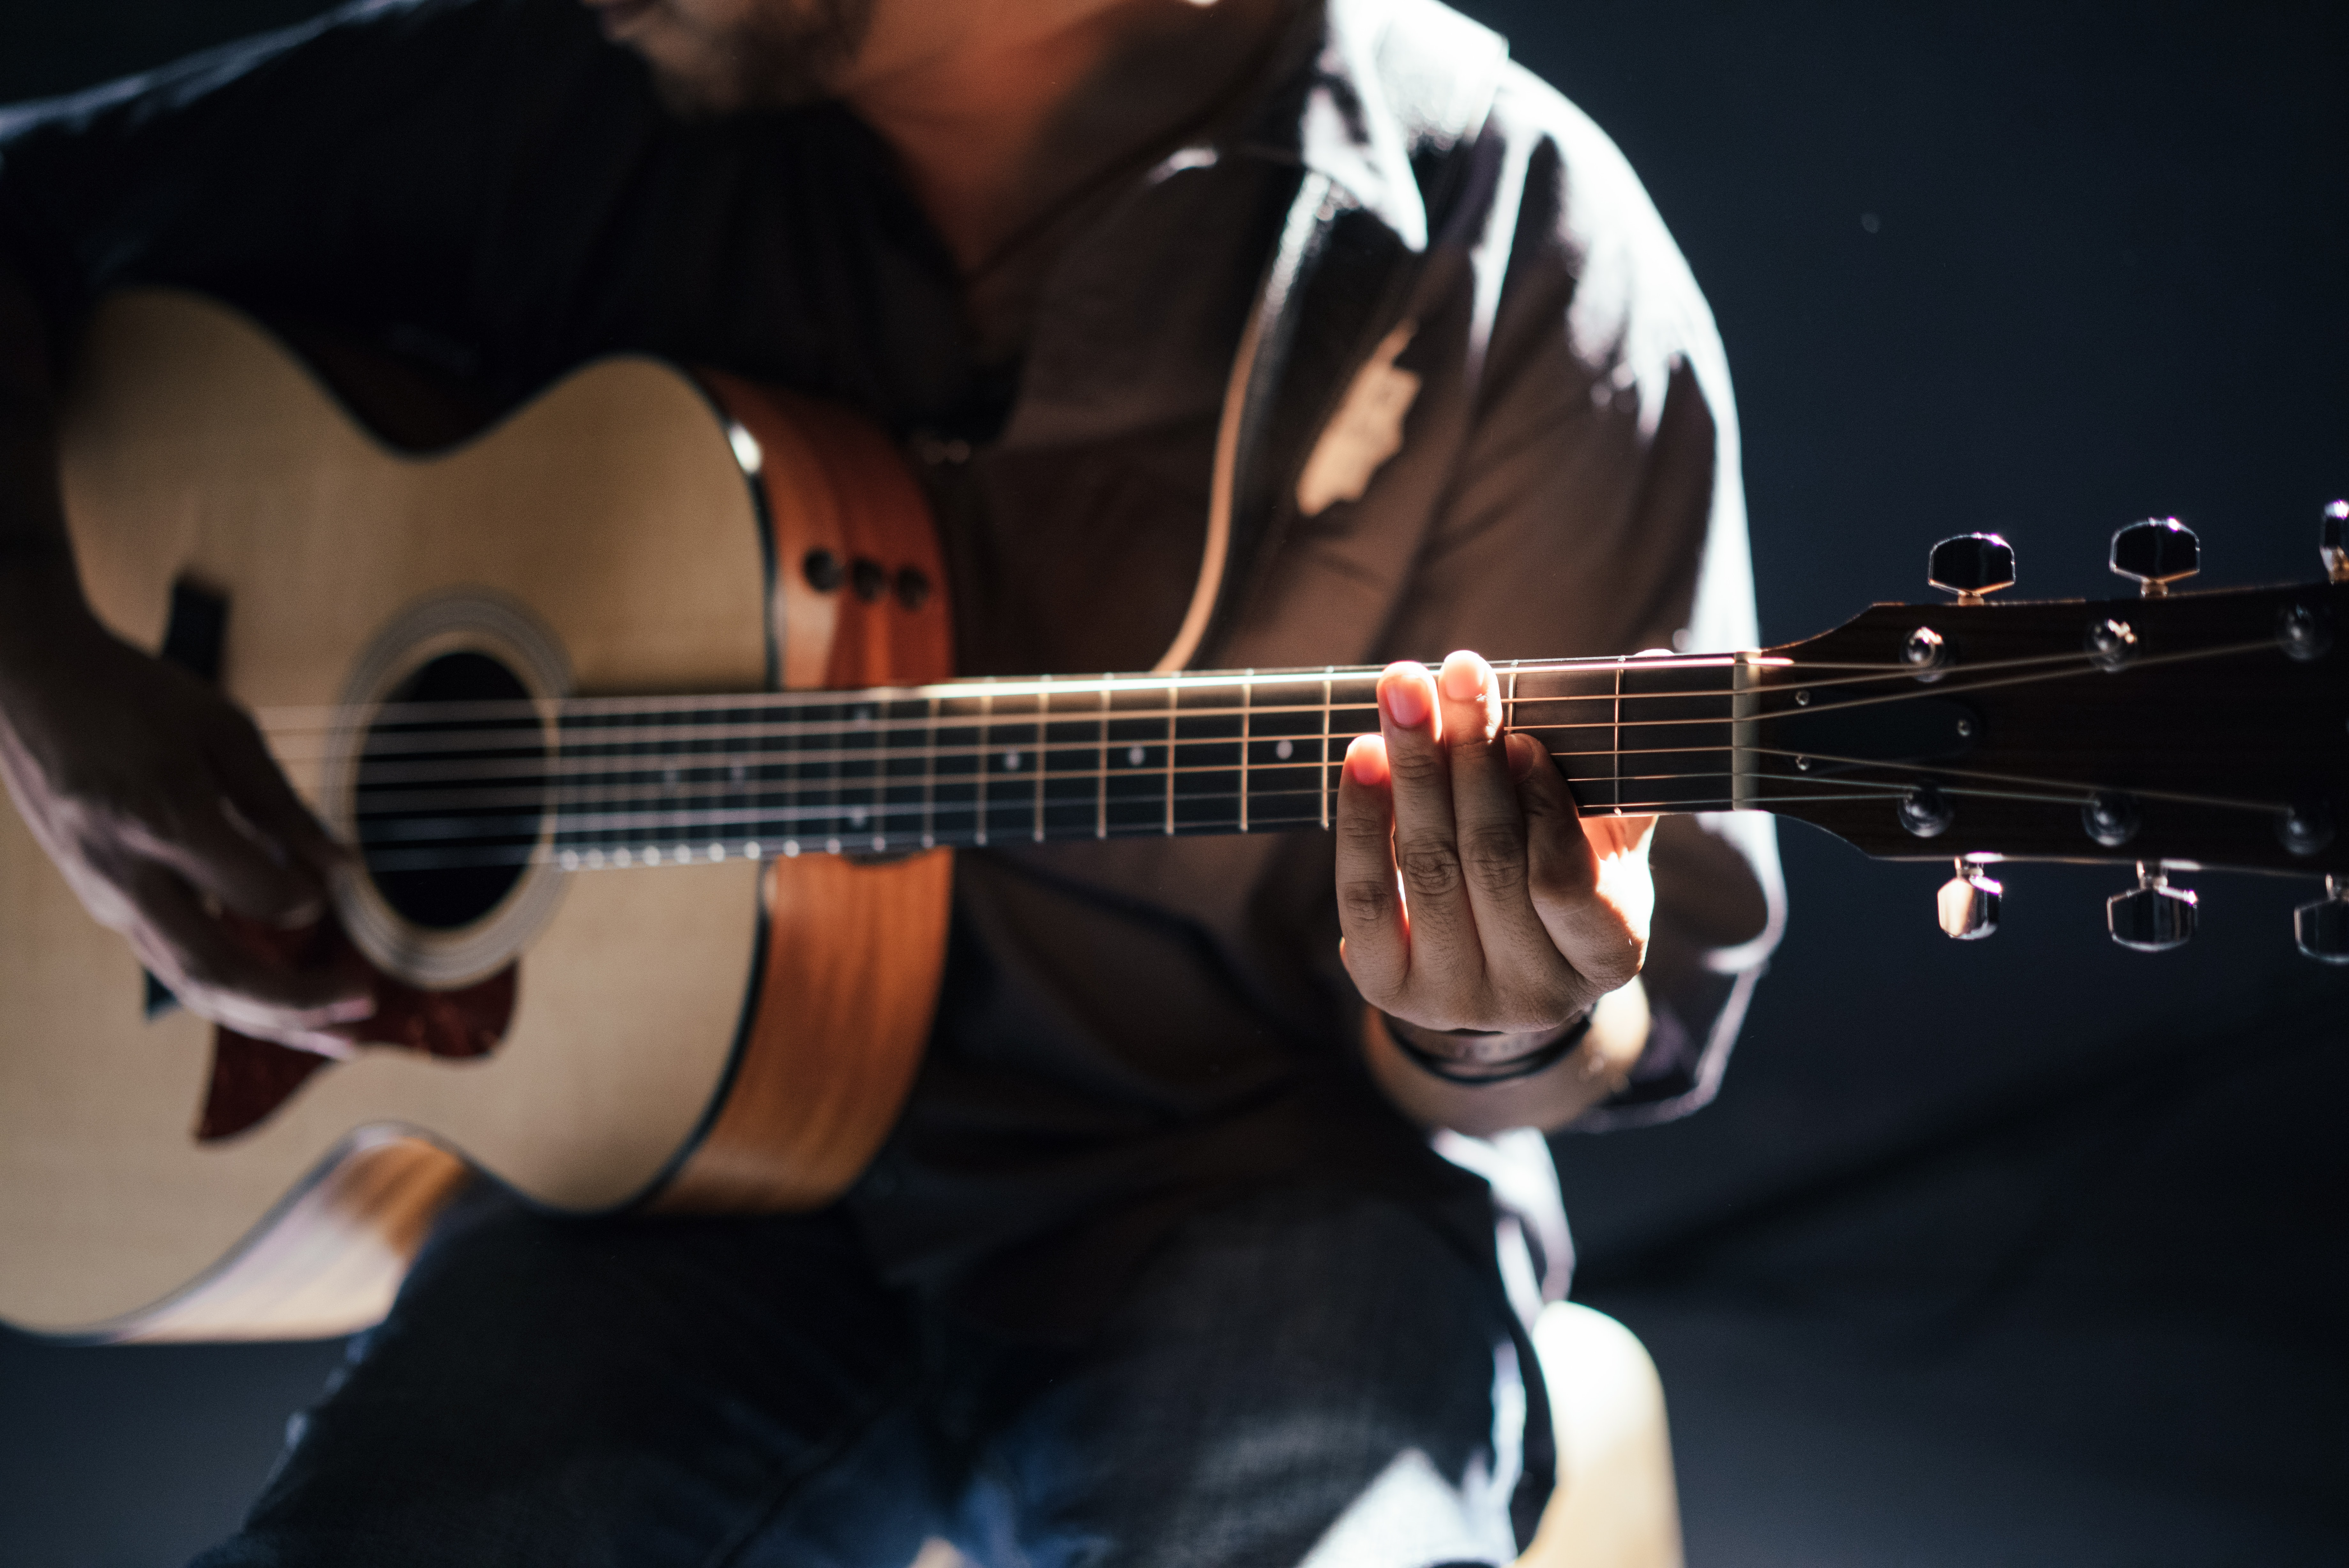 A seated person playing acoustic guitar